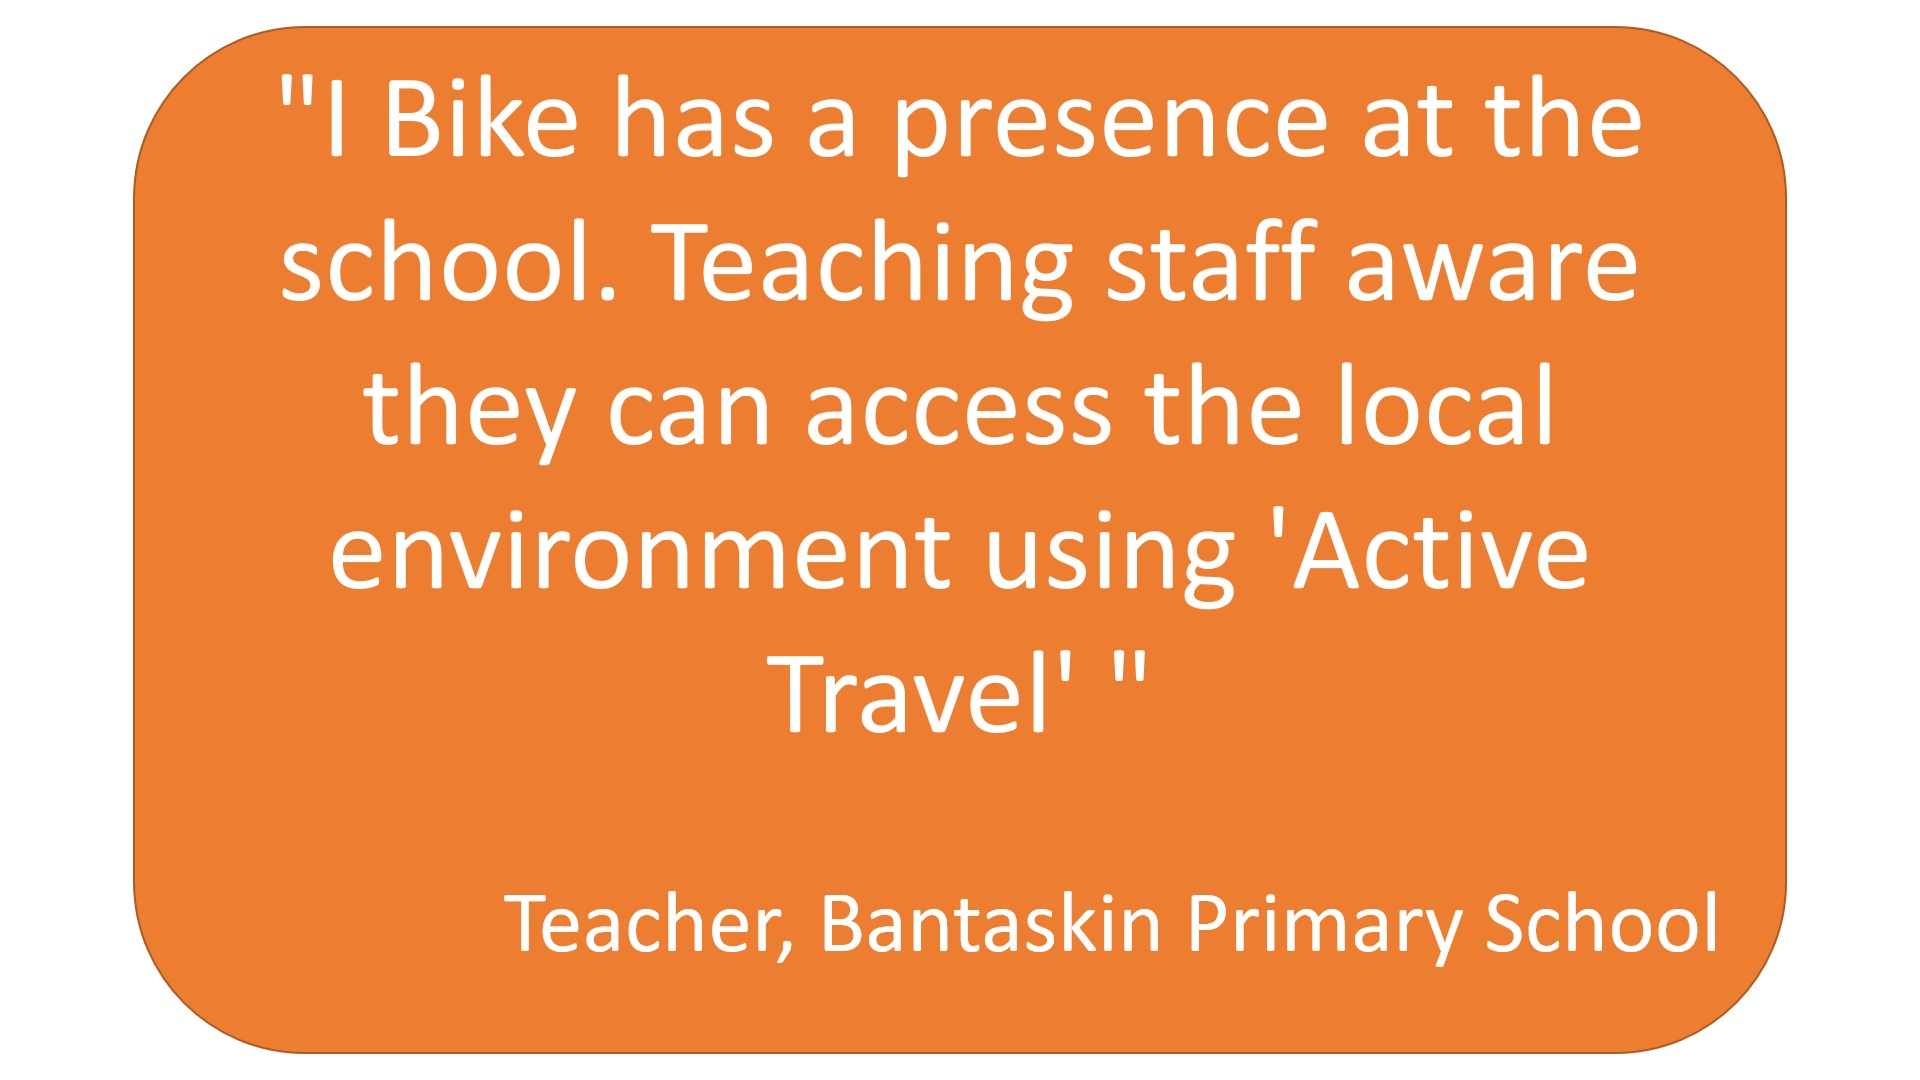 """ I Bike has a presence at the school. Teaching staff are aware they can access the local environment using 'Active Travel'"" Teacher, Bantaskin Primary School"